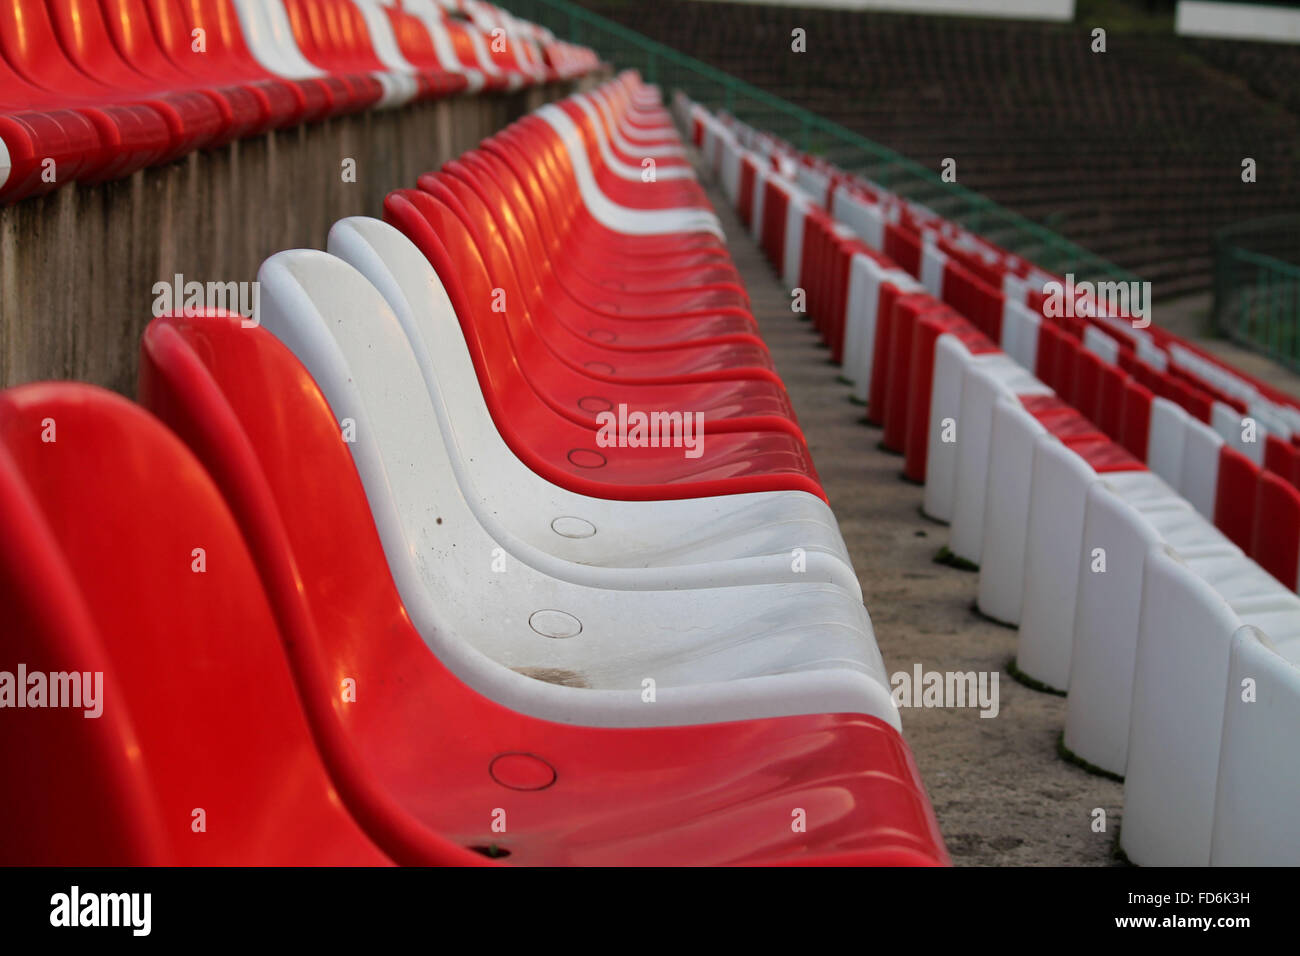 Chairs In A Stadium - Stock Image